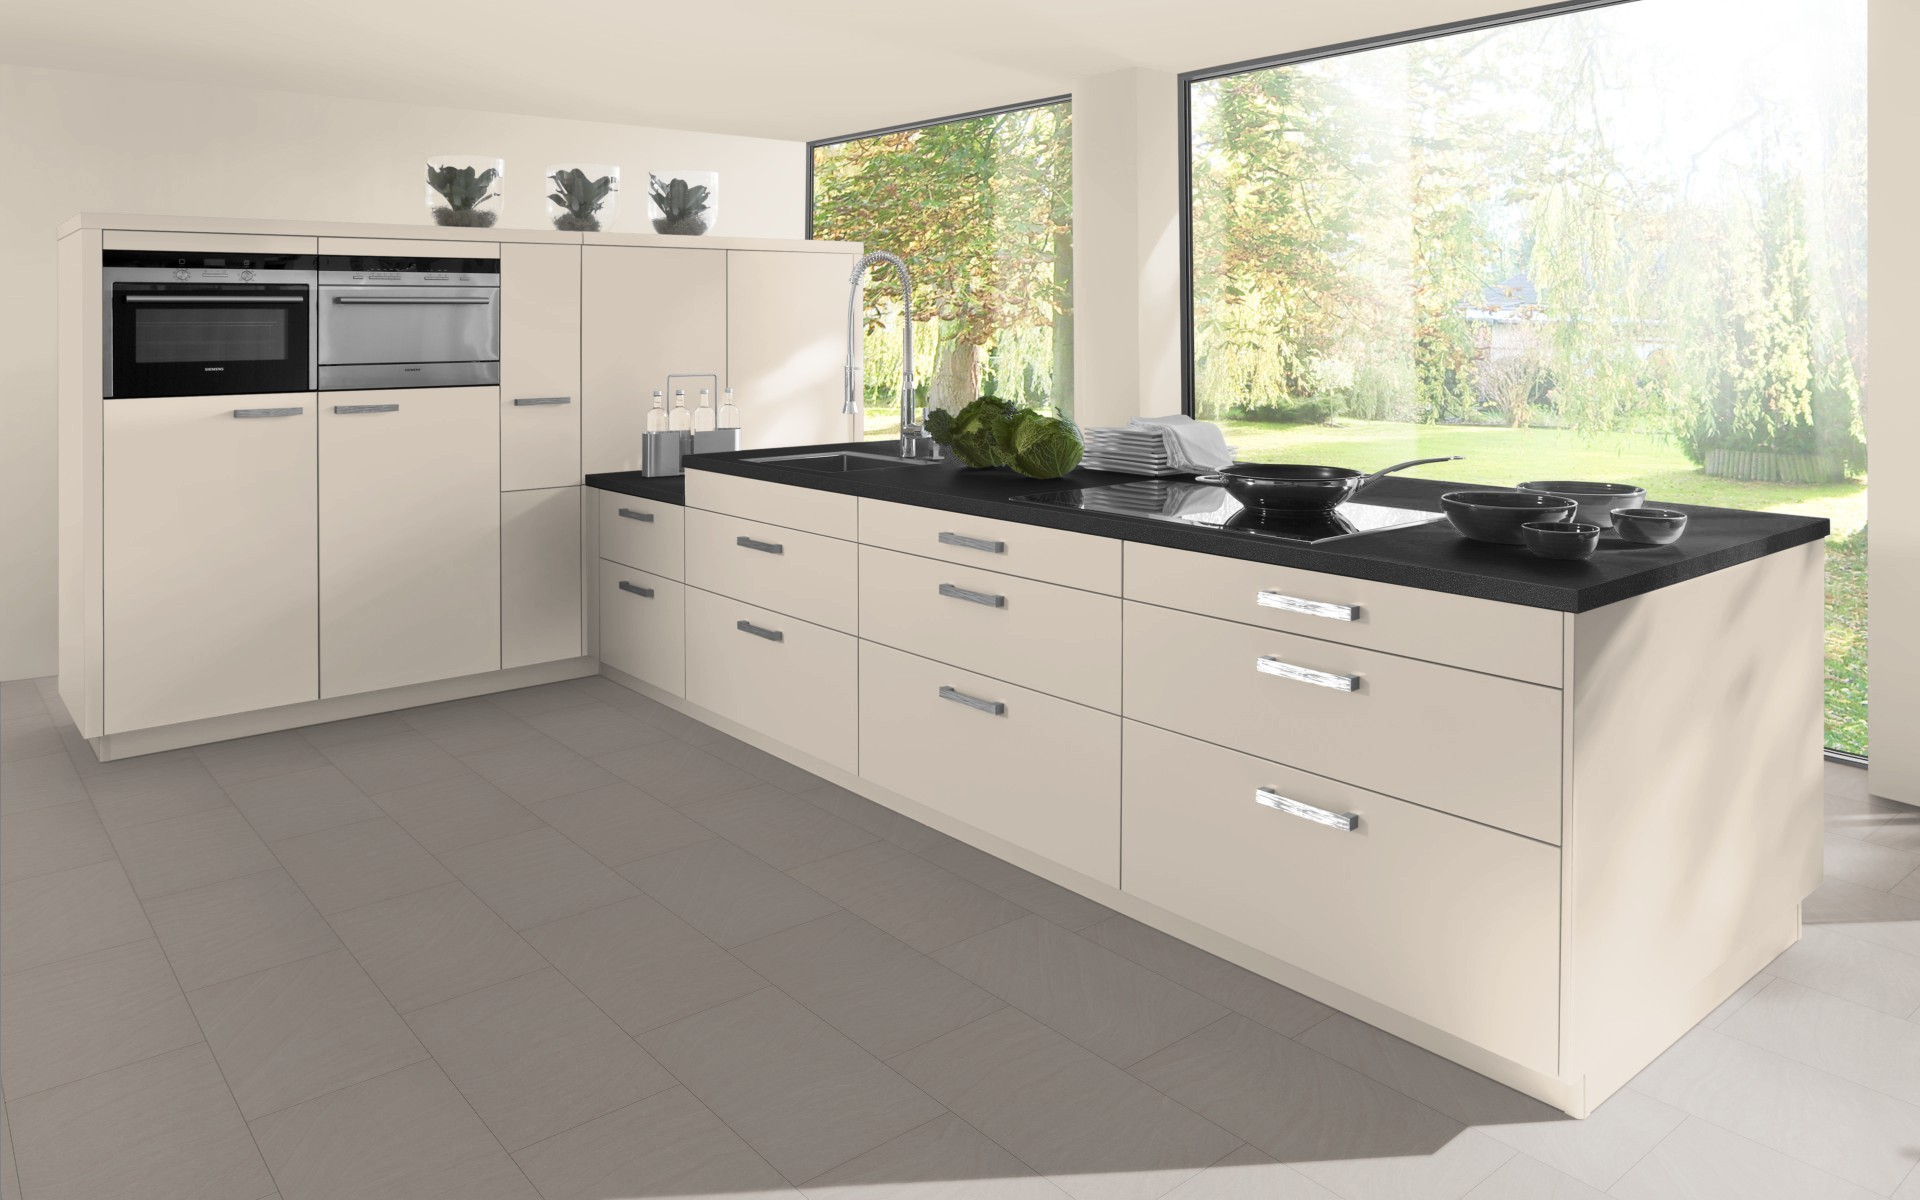 High Gloss Tall Wall Corner Cabinet Door Trade Kitchens For All